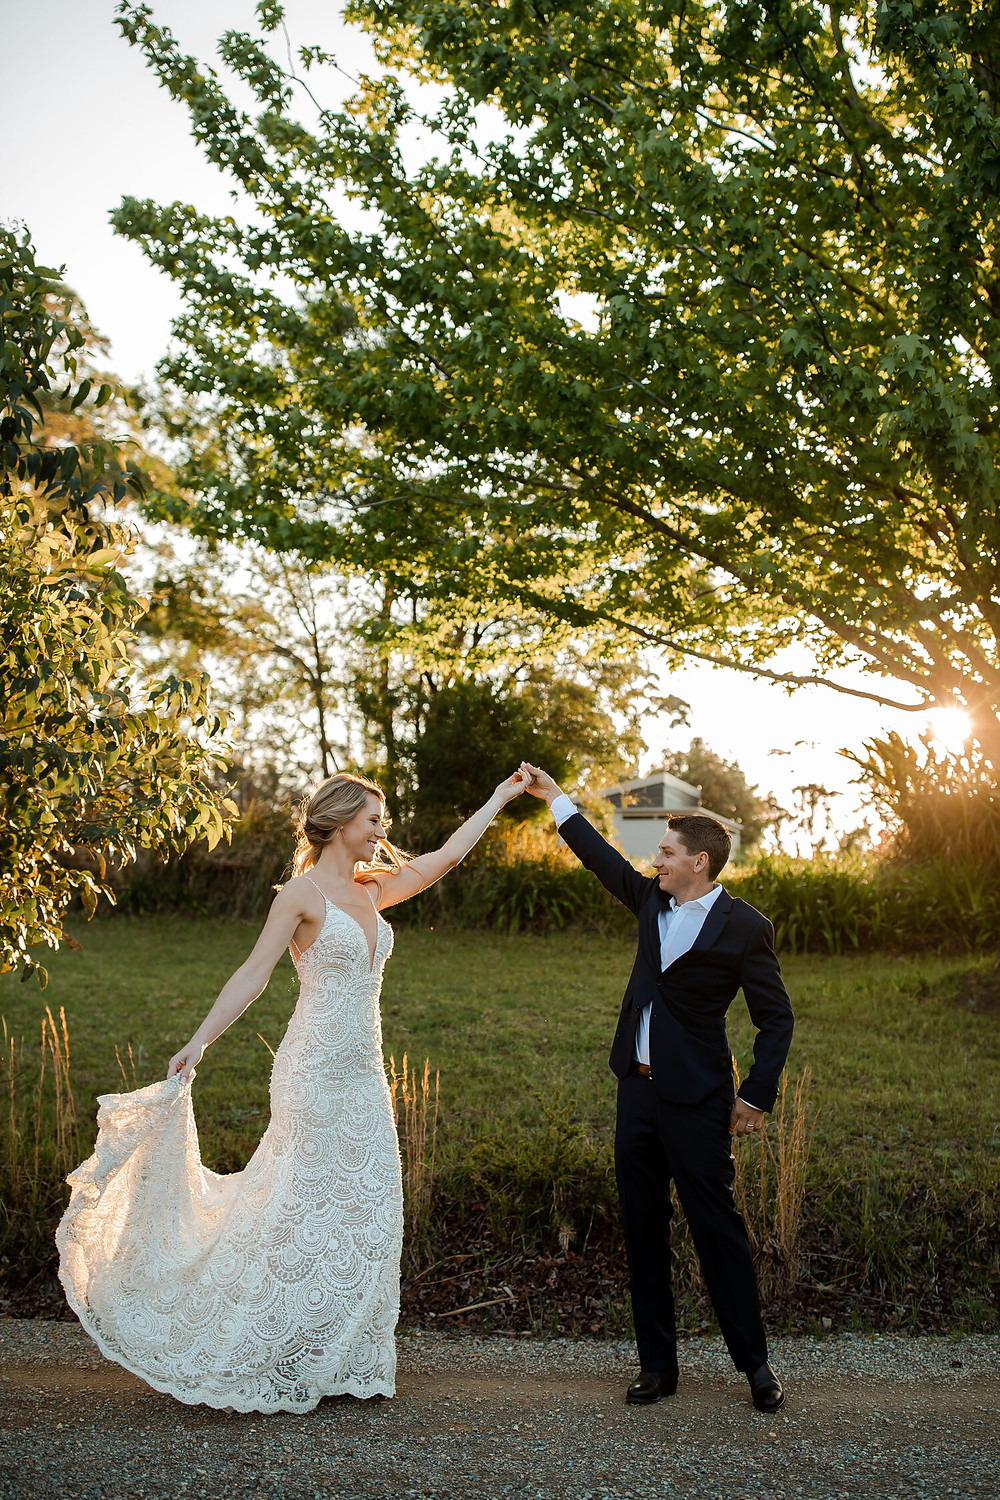 Couple dancing in the golden sunlight